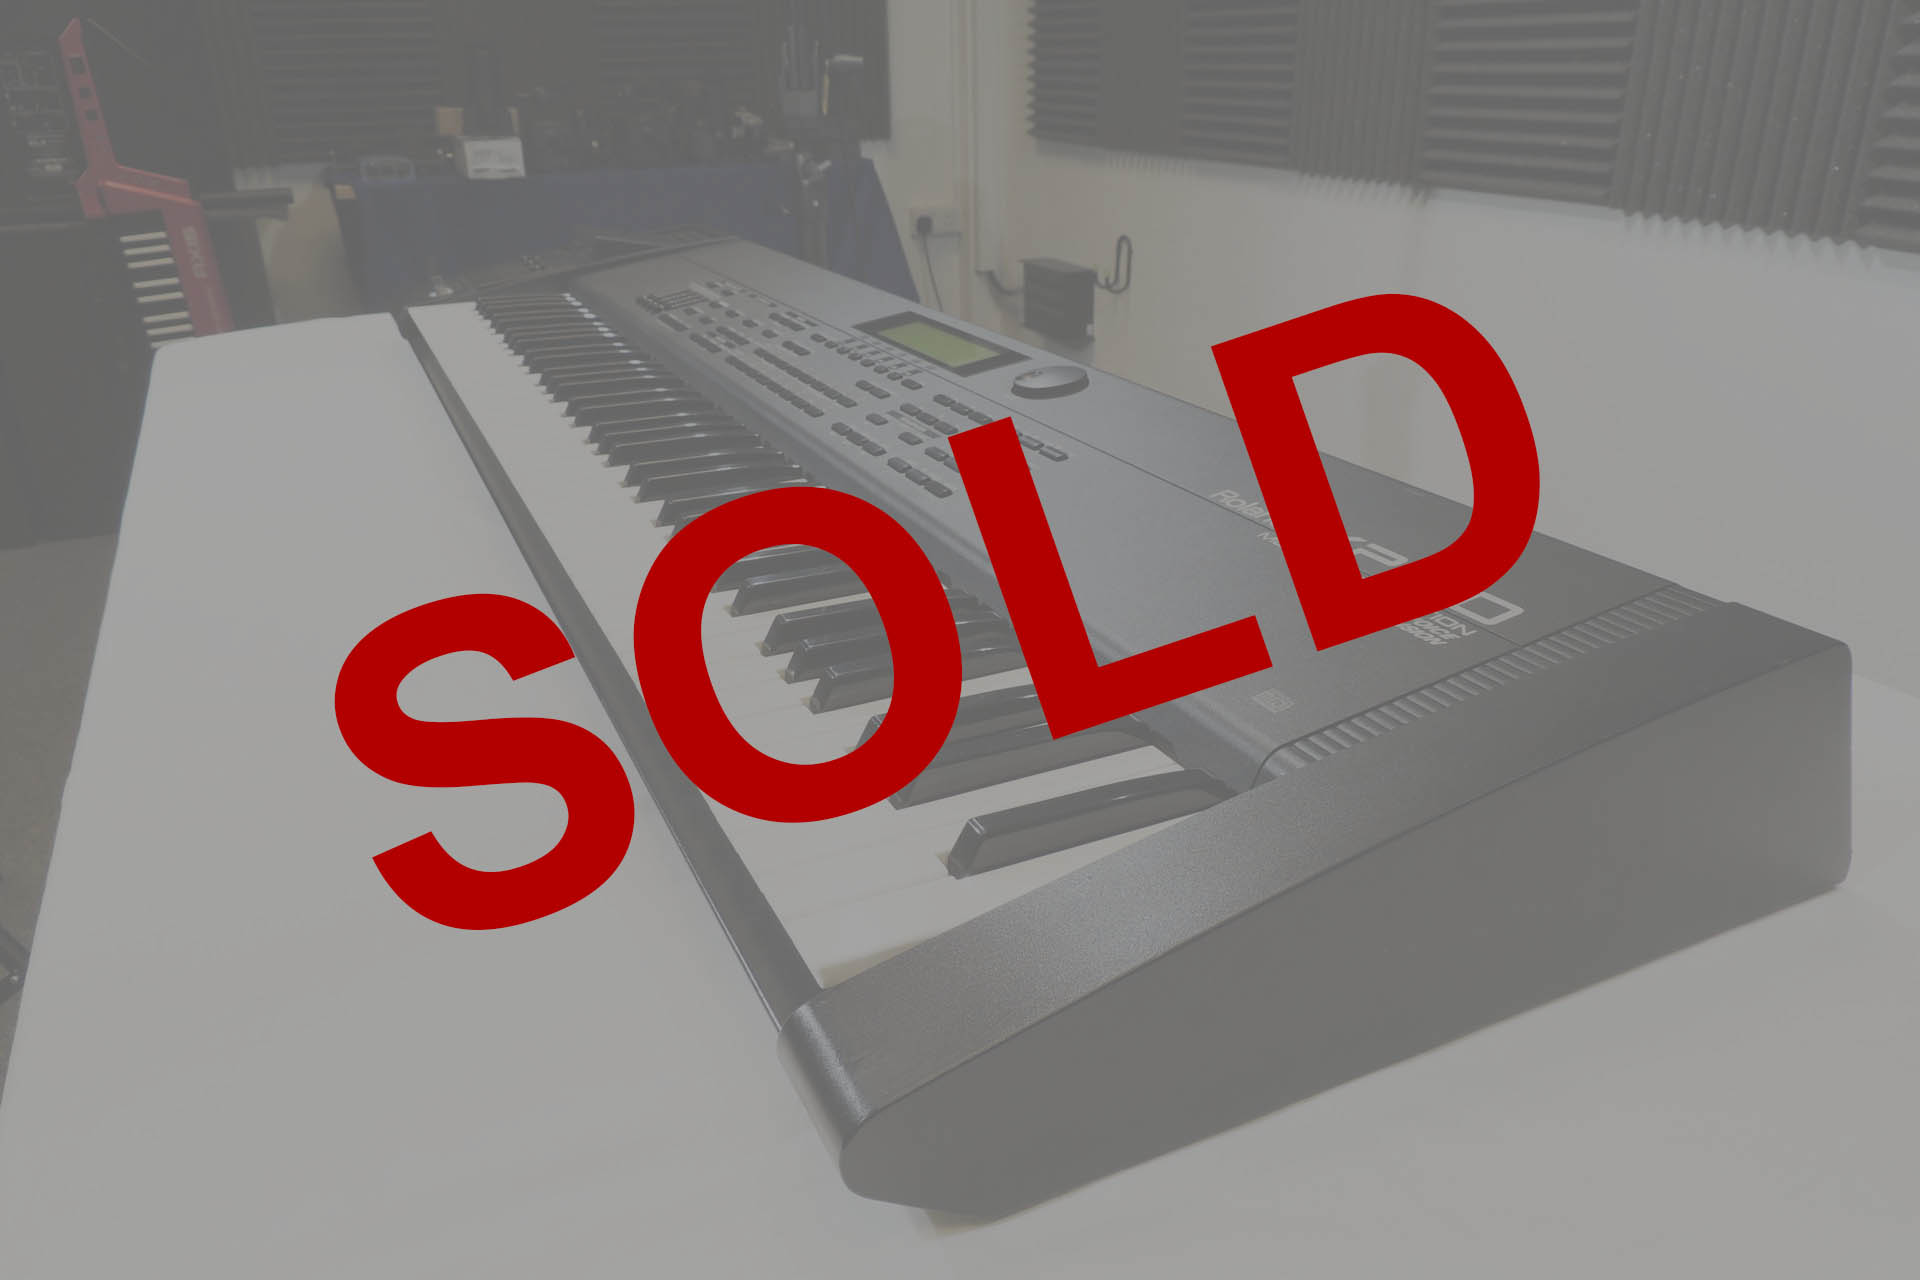 Roland XP-80 sold at Plasma Music